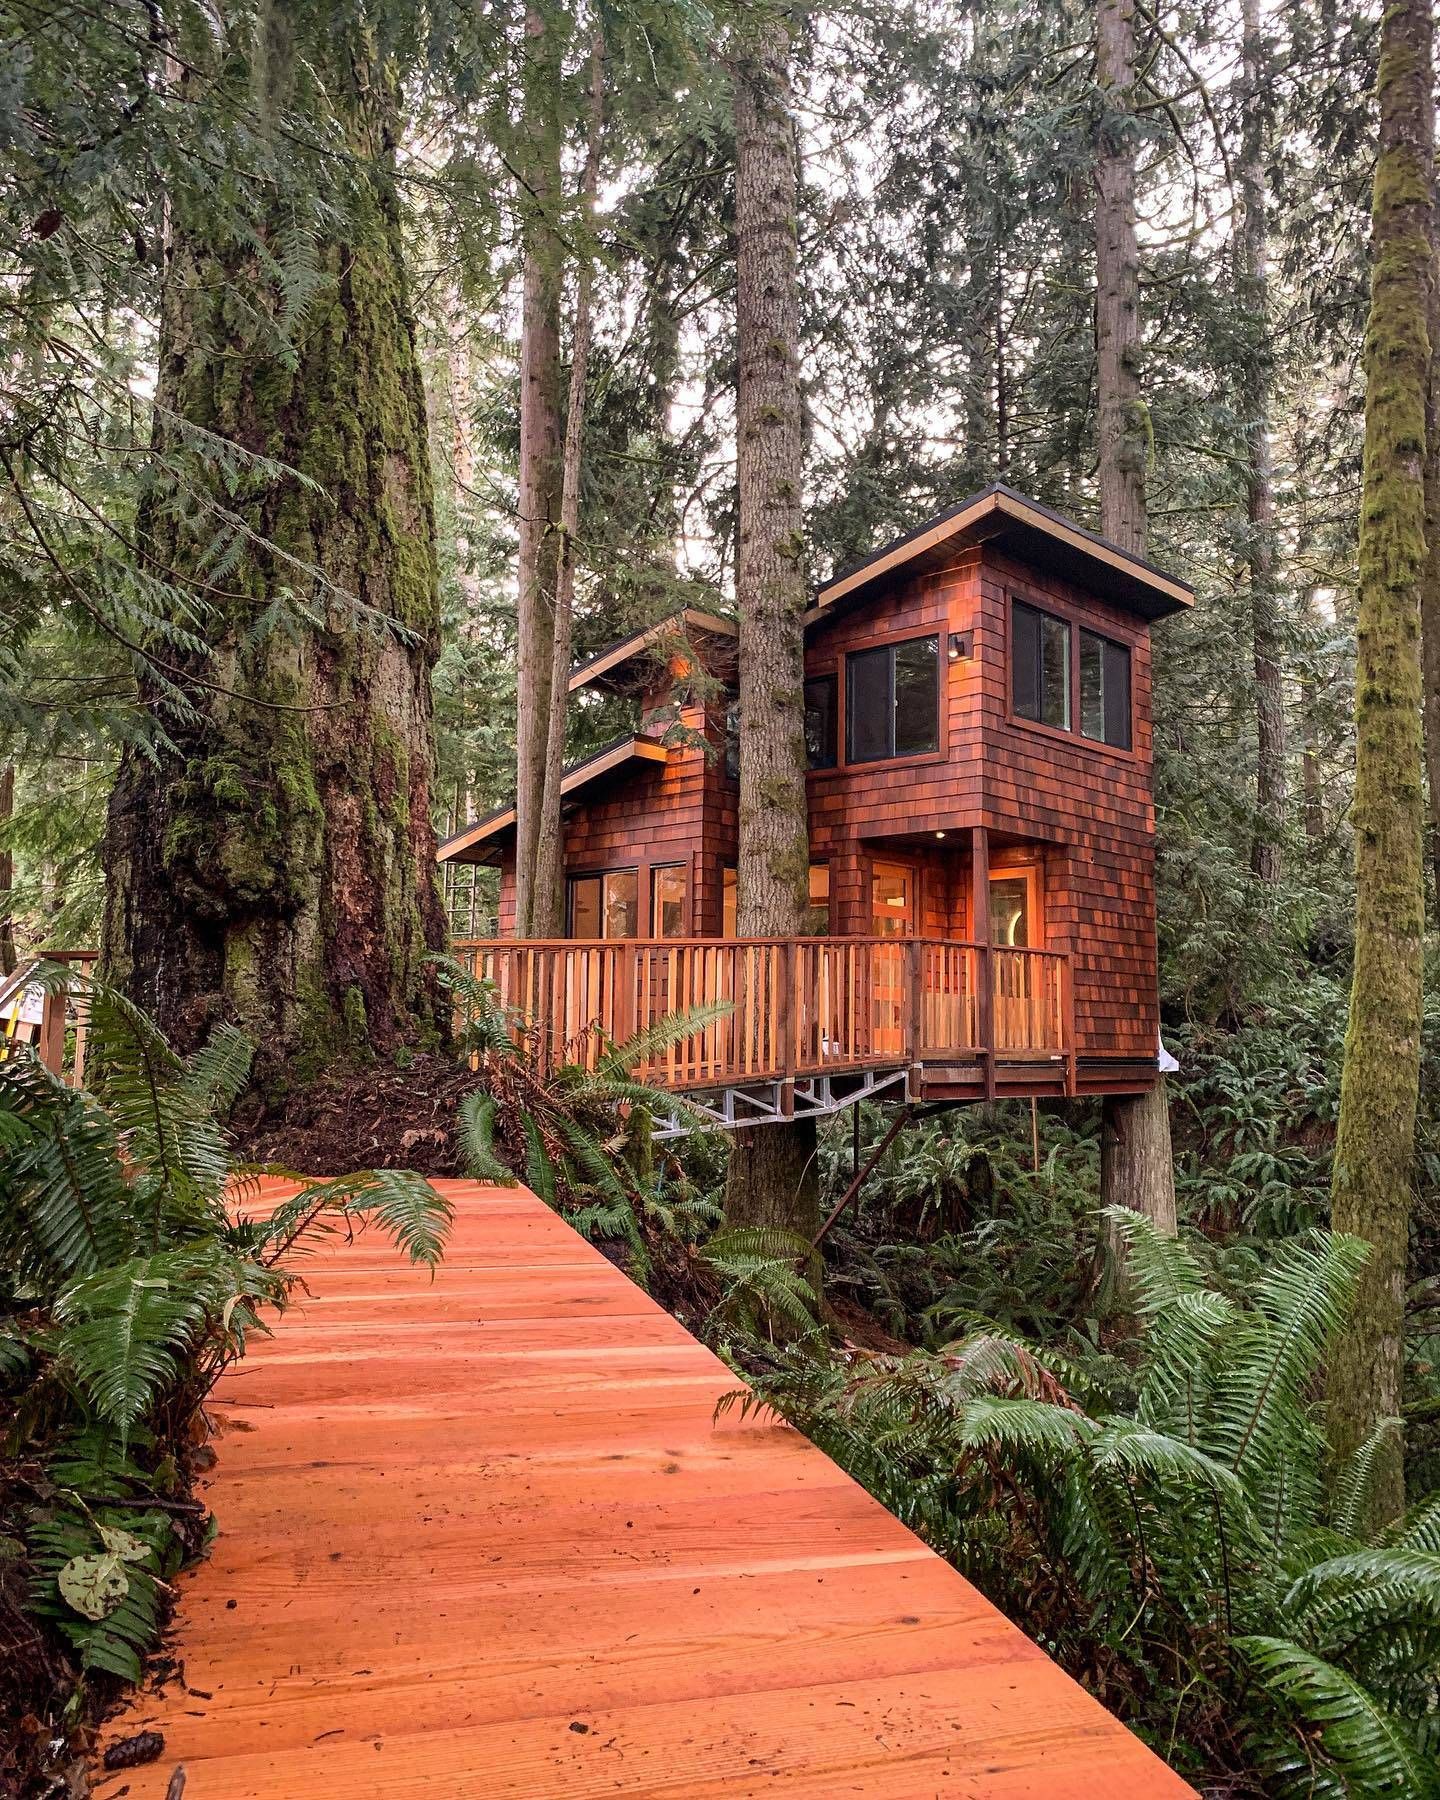 Local carpenter Tyler Bohn embarked on a quest to create the East Sooke Treehouse, after seeing people build similar structures on a Discovery Channel show. (East Sooke Treehouse Facebook photo)